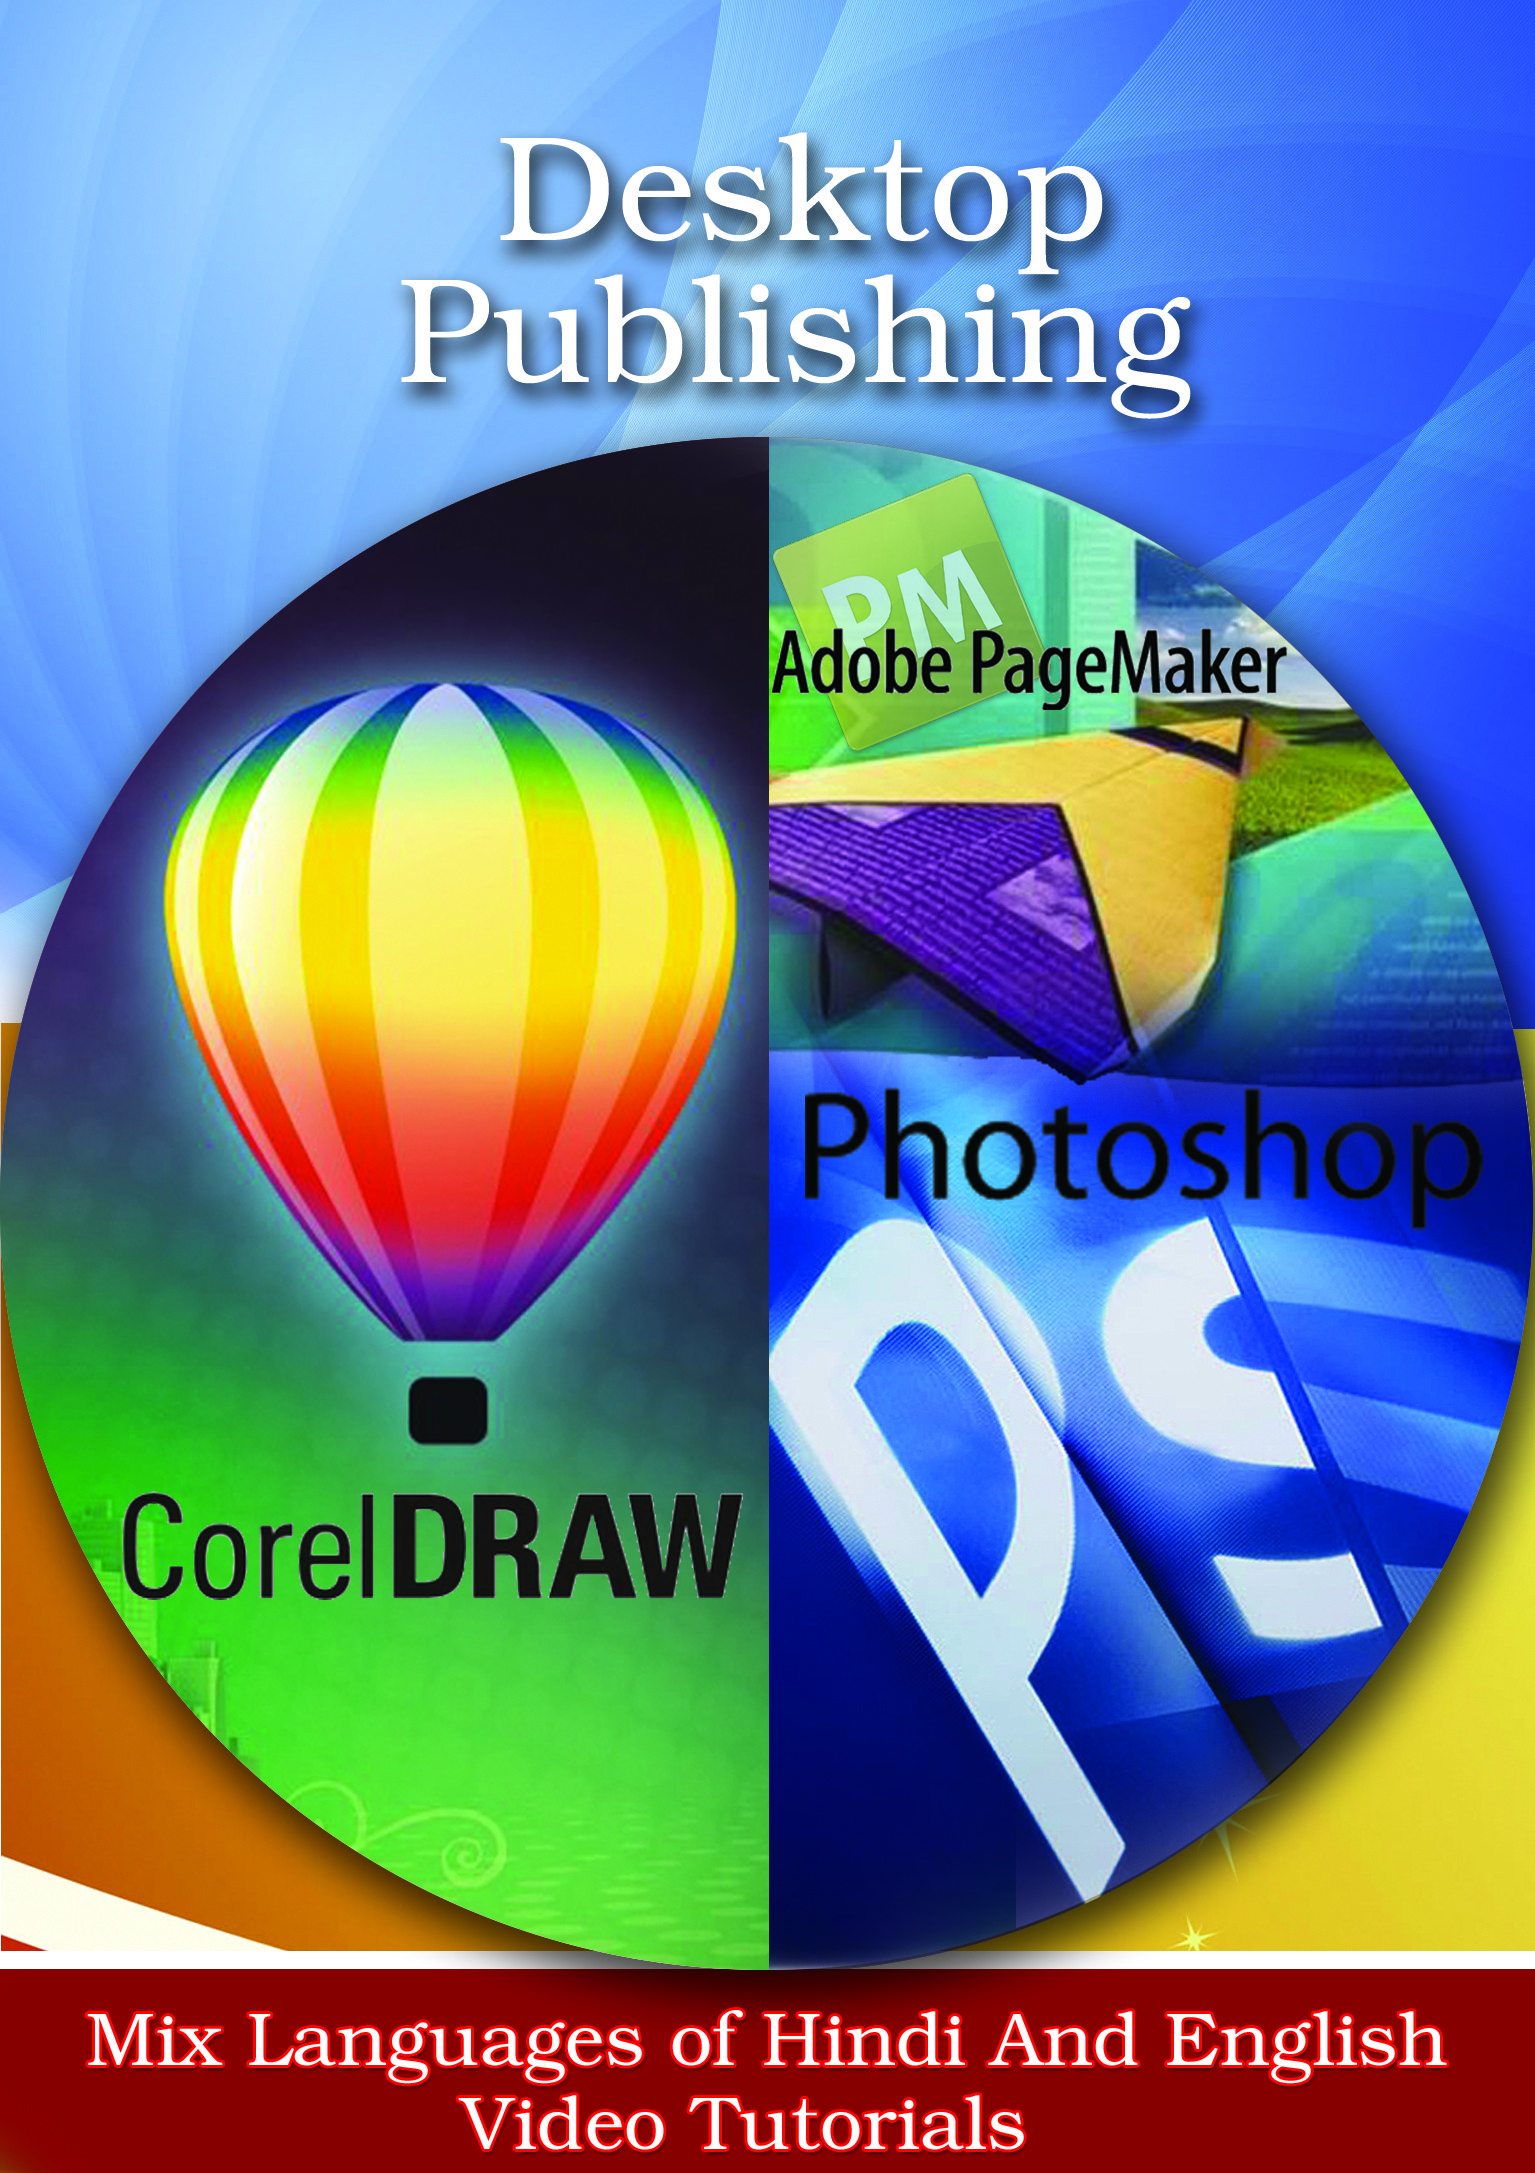 Lsoit Photoshop 7, Corel Draw X3, PageMaker DVD(DVD)